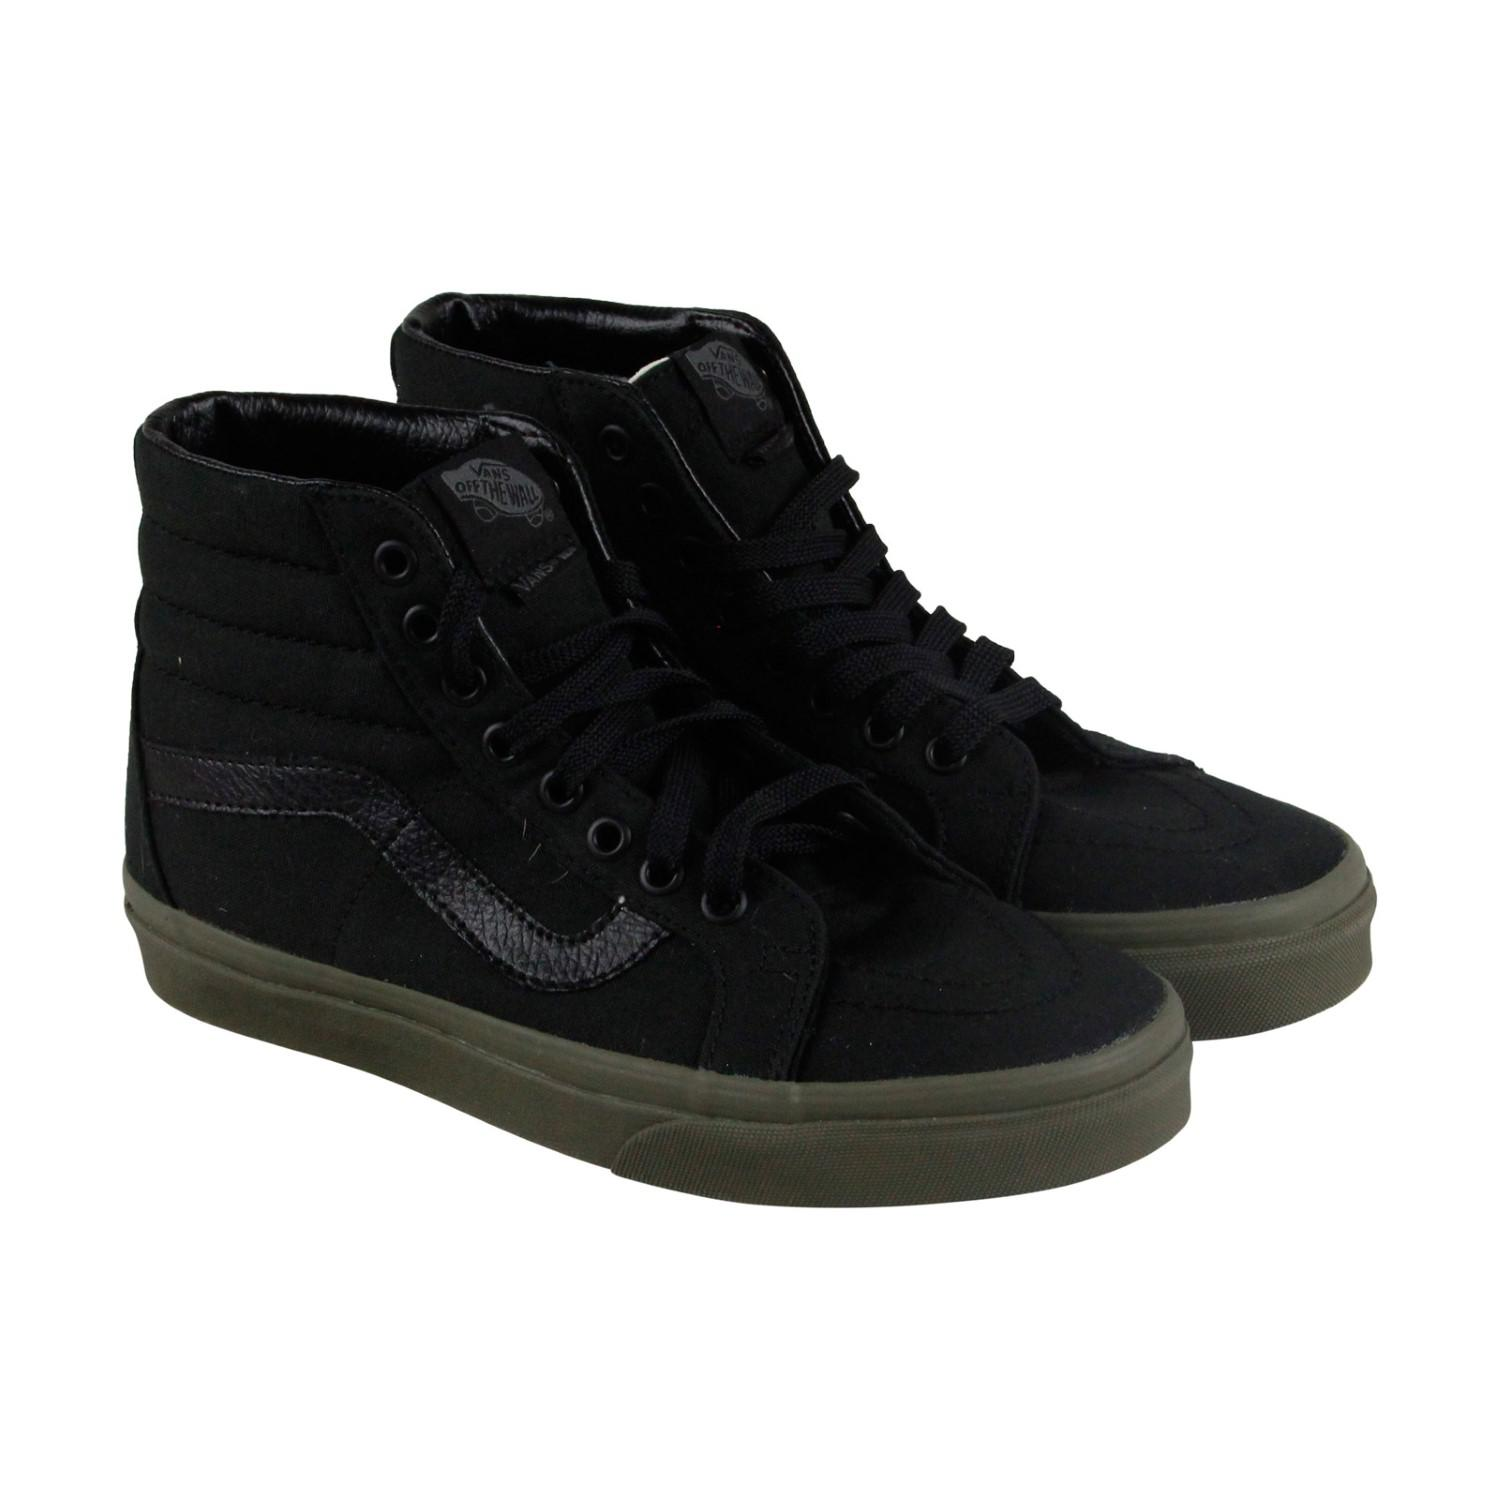 213c21627f1 Lyst - Vans Sk8 Hi Reissue Ivory Green High Top Sneakers in Black ...